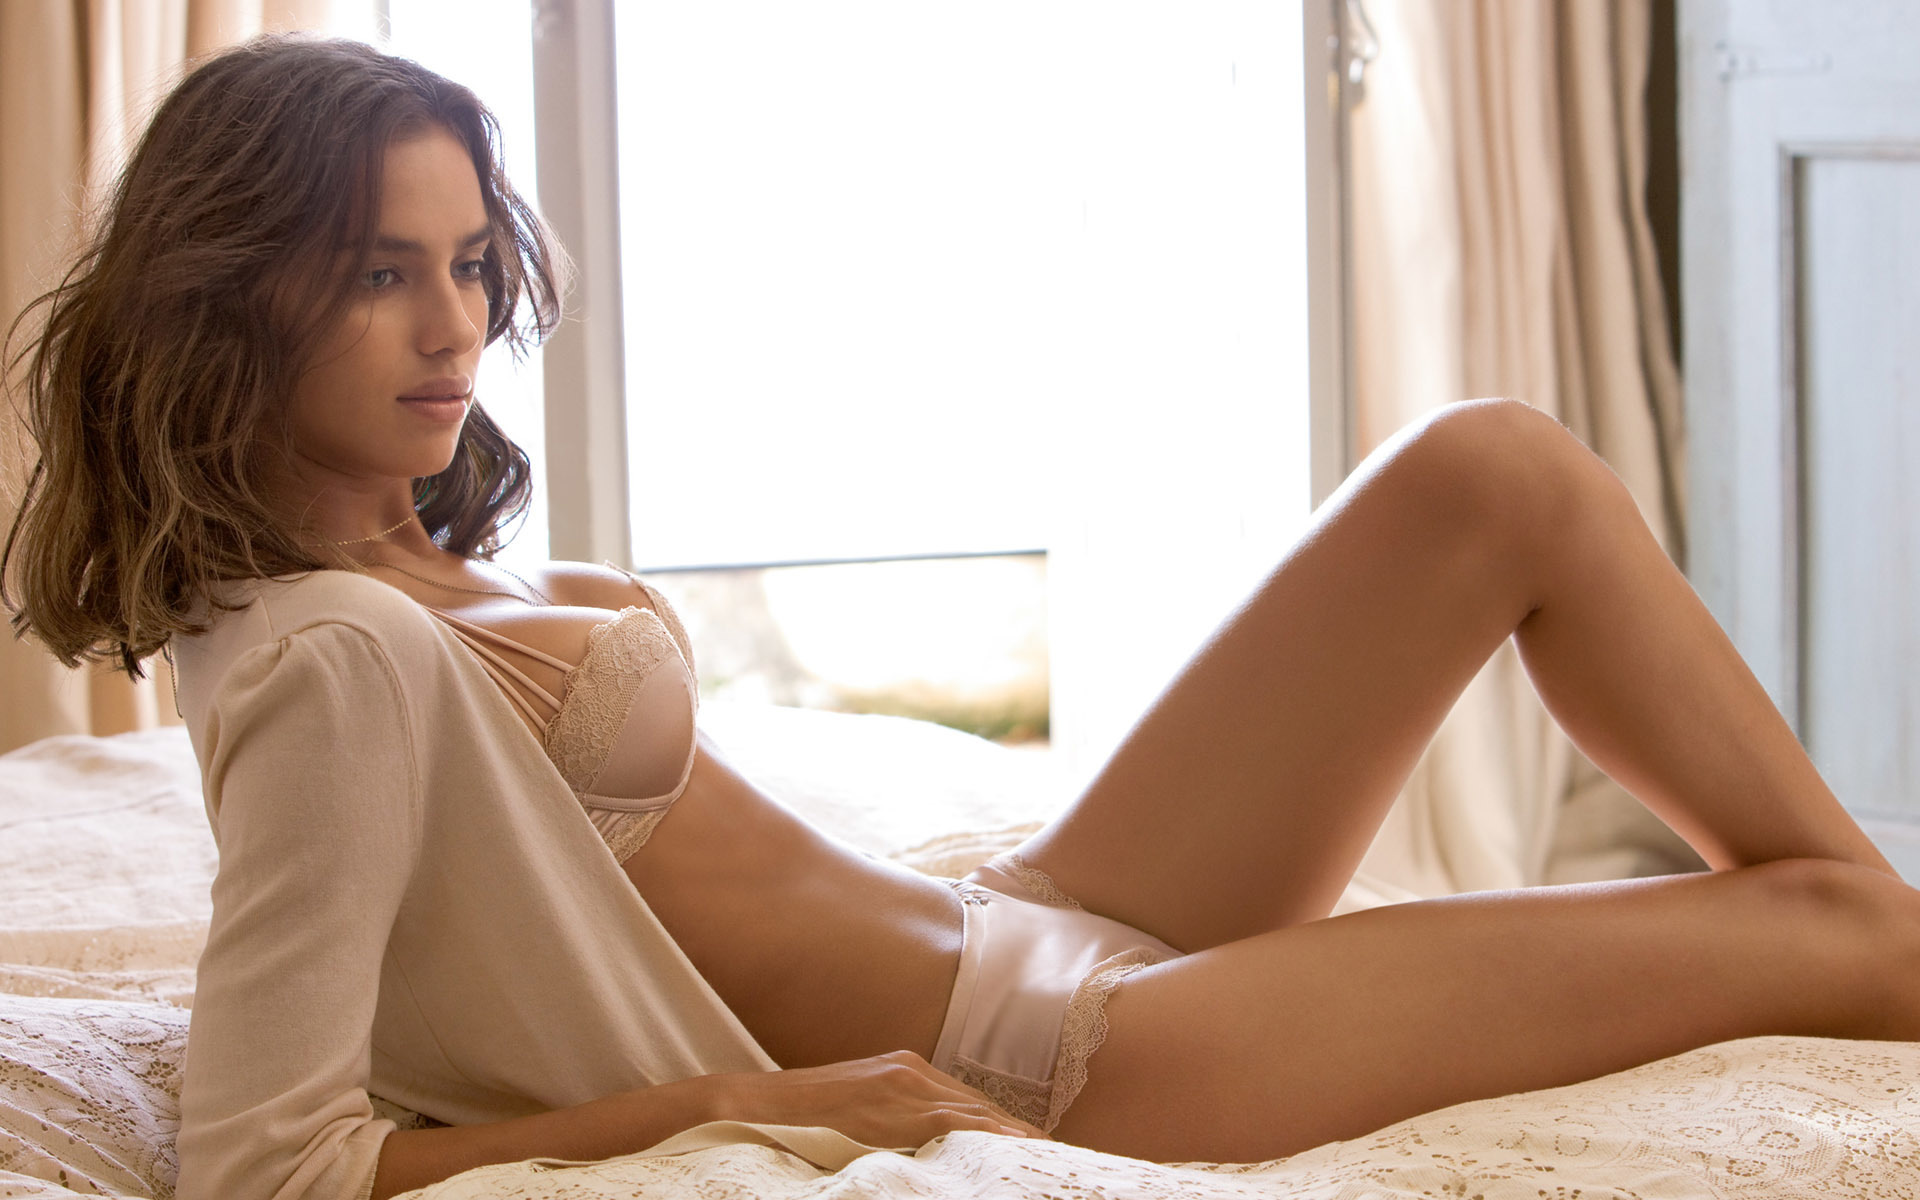 Women Irina shayk girl HD Wallpaper